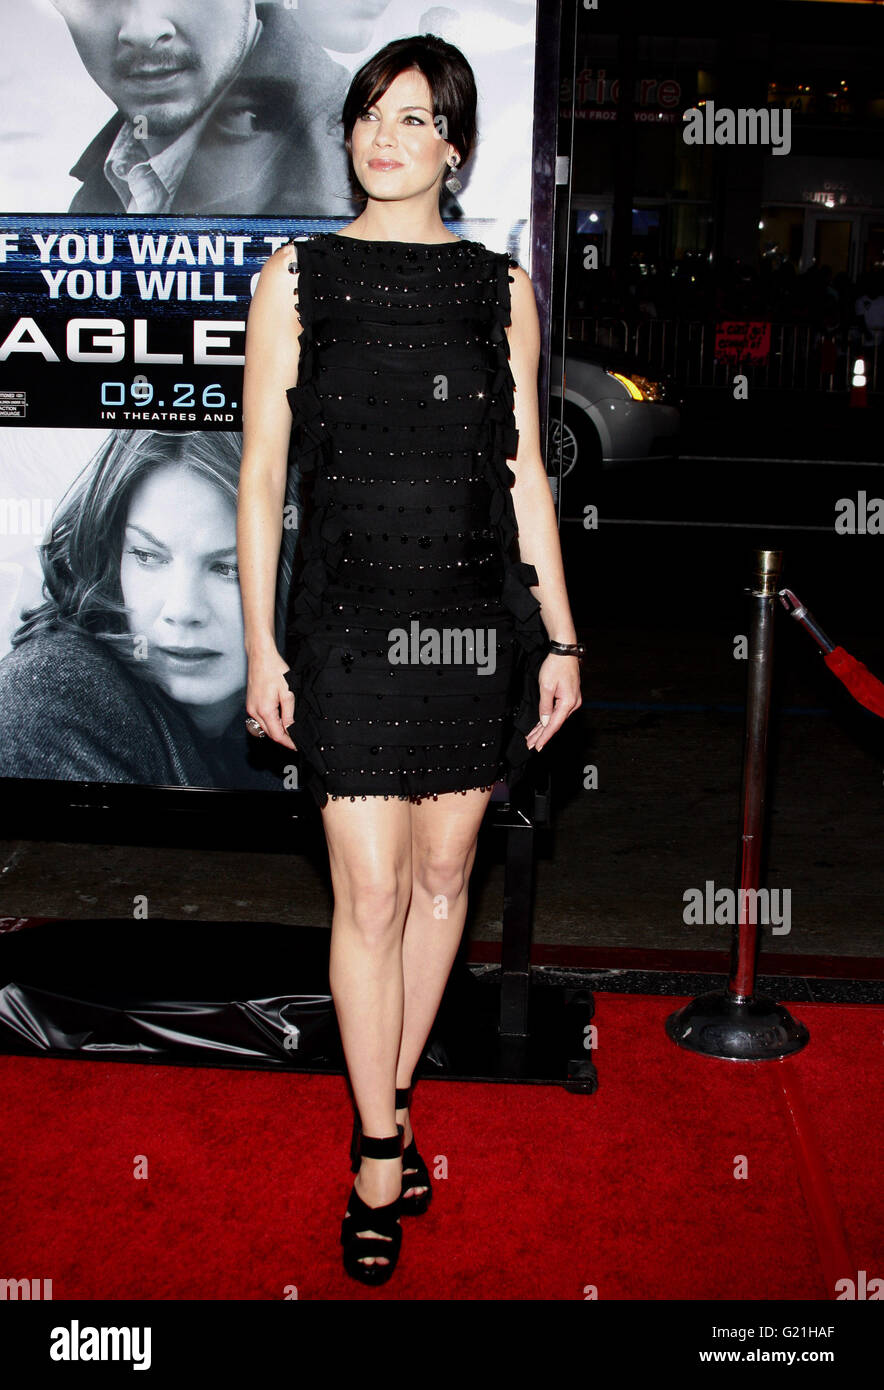 MAVRIXPHOTO.COM Michelle Monaghan at the Los Angeles Premiere of 'Eagle Eye' held at the Grauman's Chinese - Stock Image